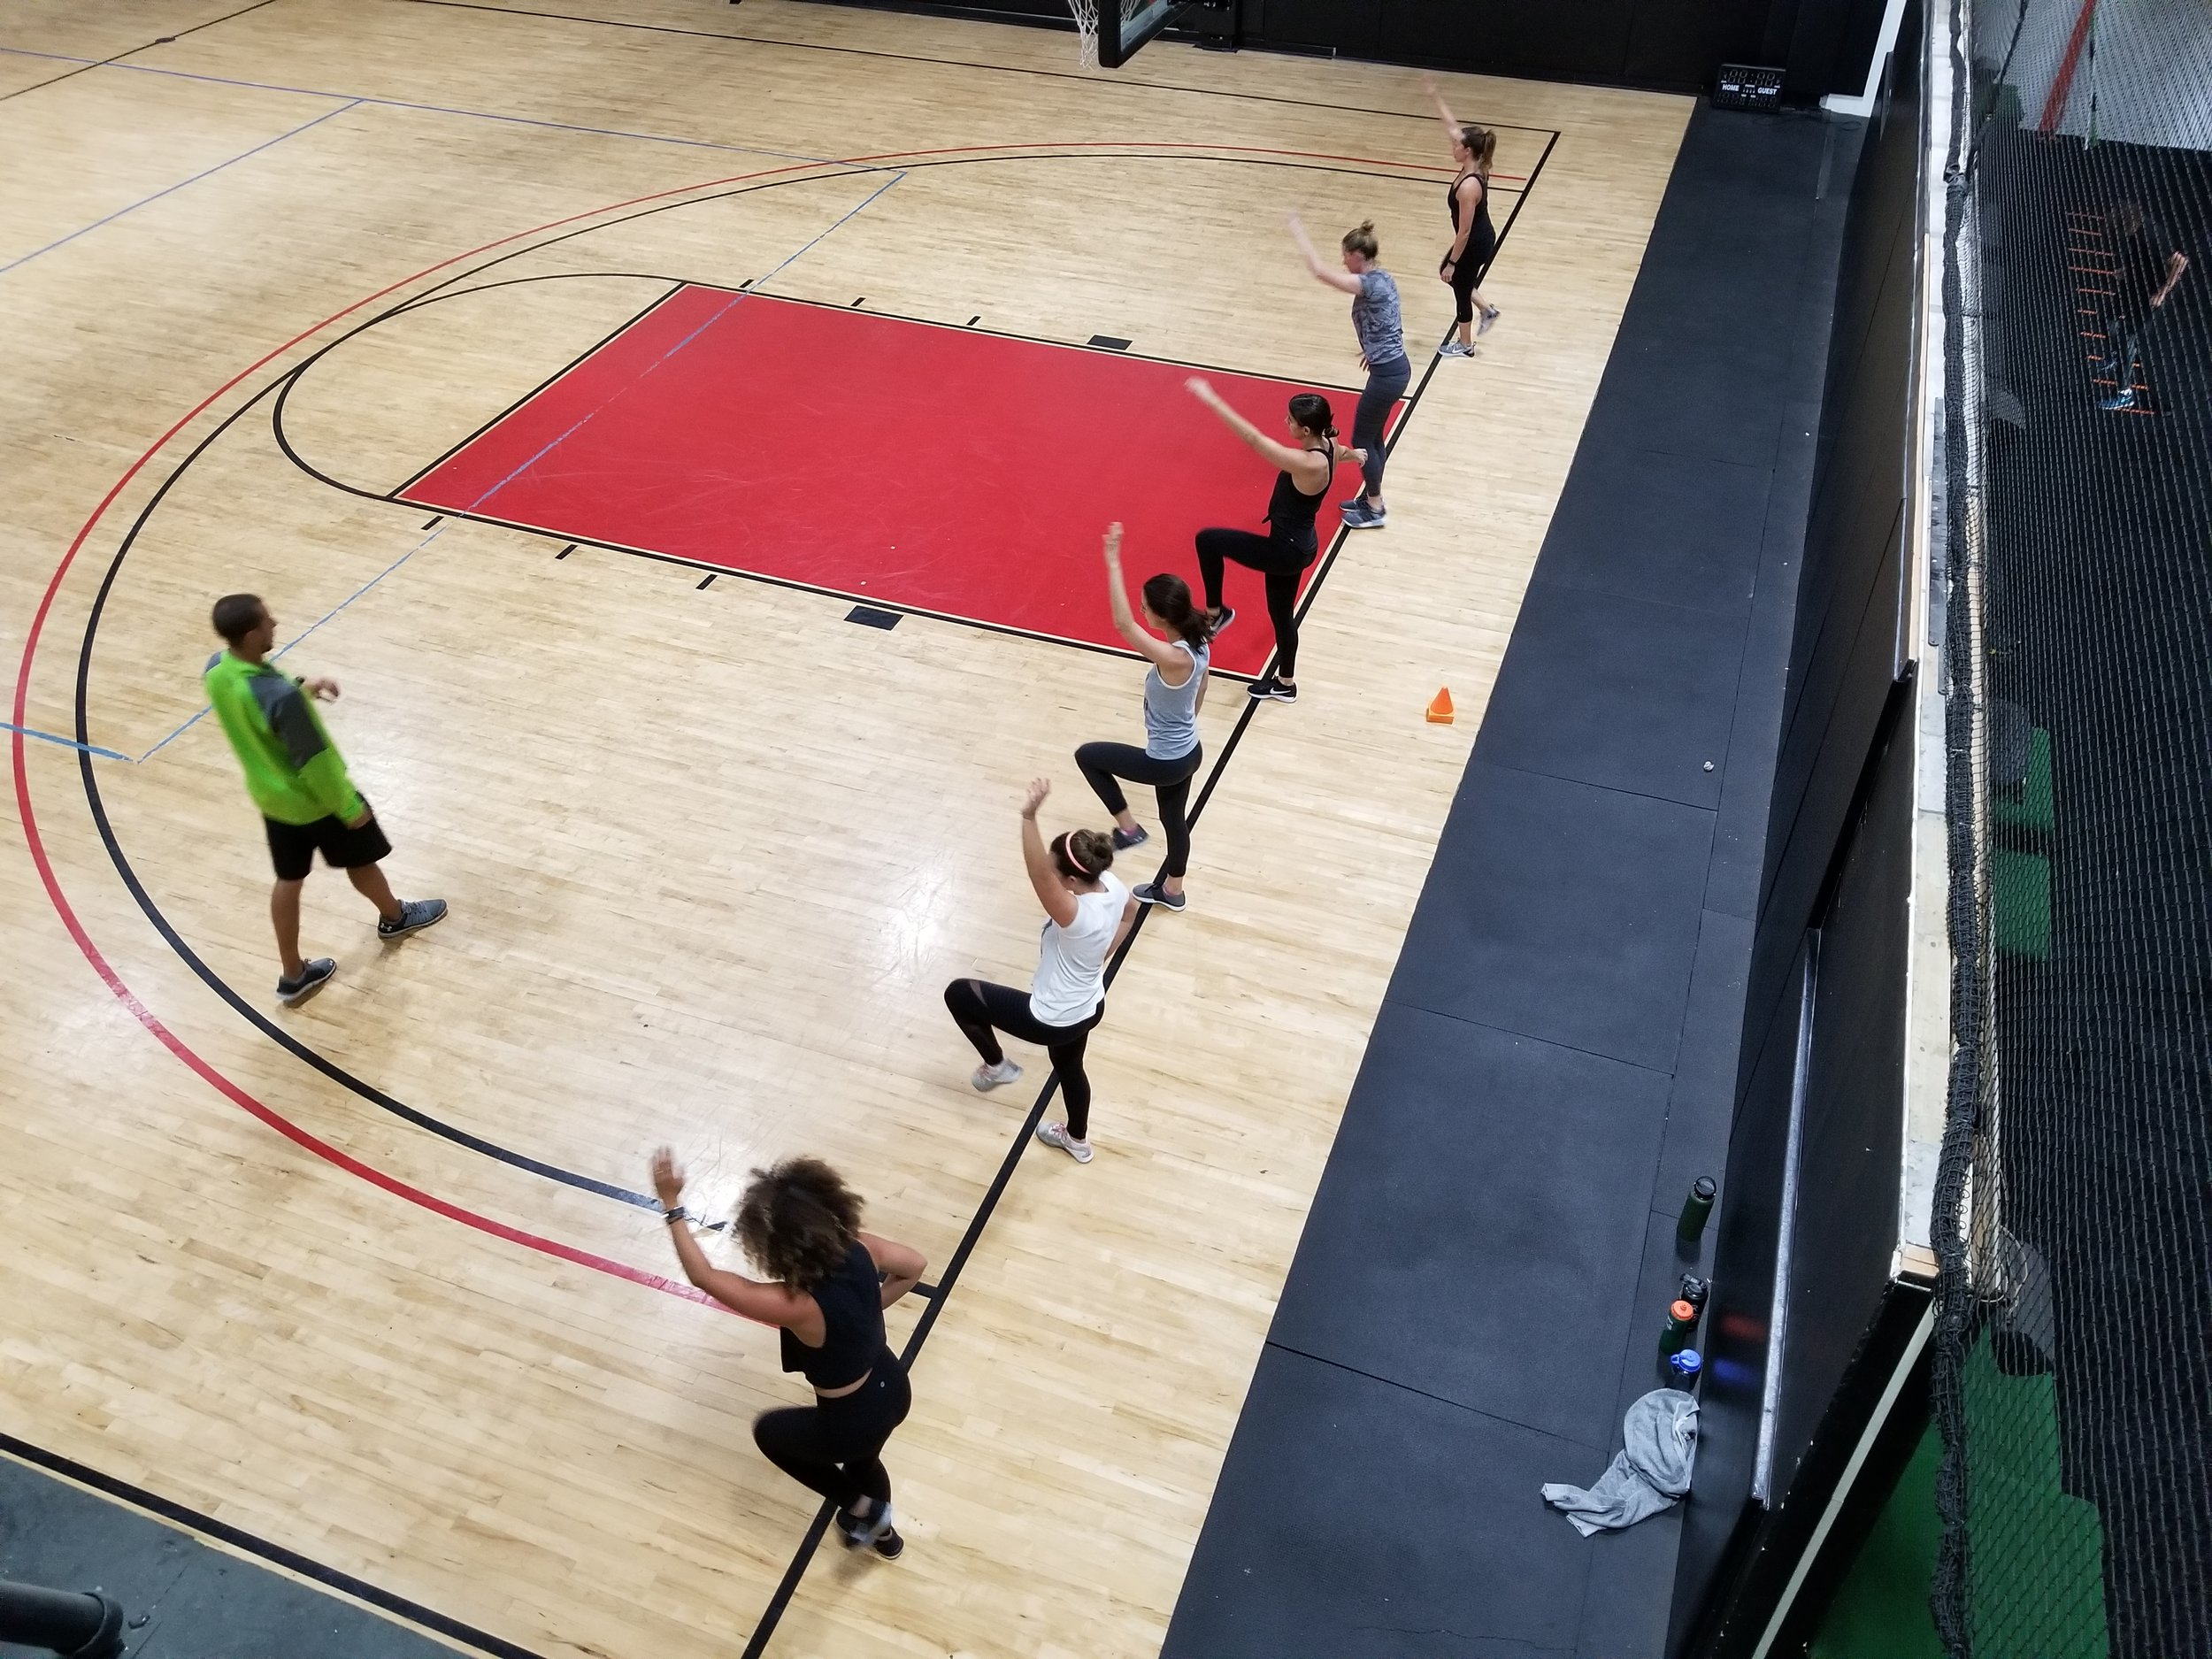 HUMAN PERFORMANCE - The Human Performance division of Fast Twitch targets individuals and groups whose goals require a strong base in physical and mental conditioning. This division custom designs programming specific to executive, corporate wellness, and tactical needs.